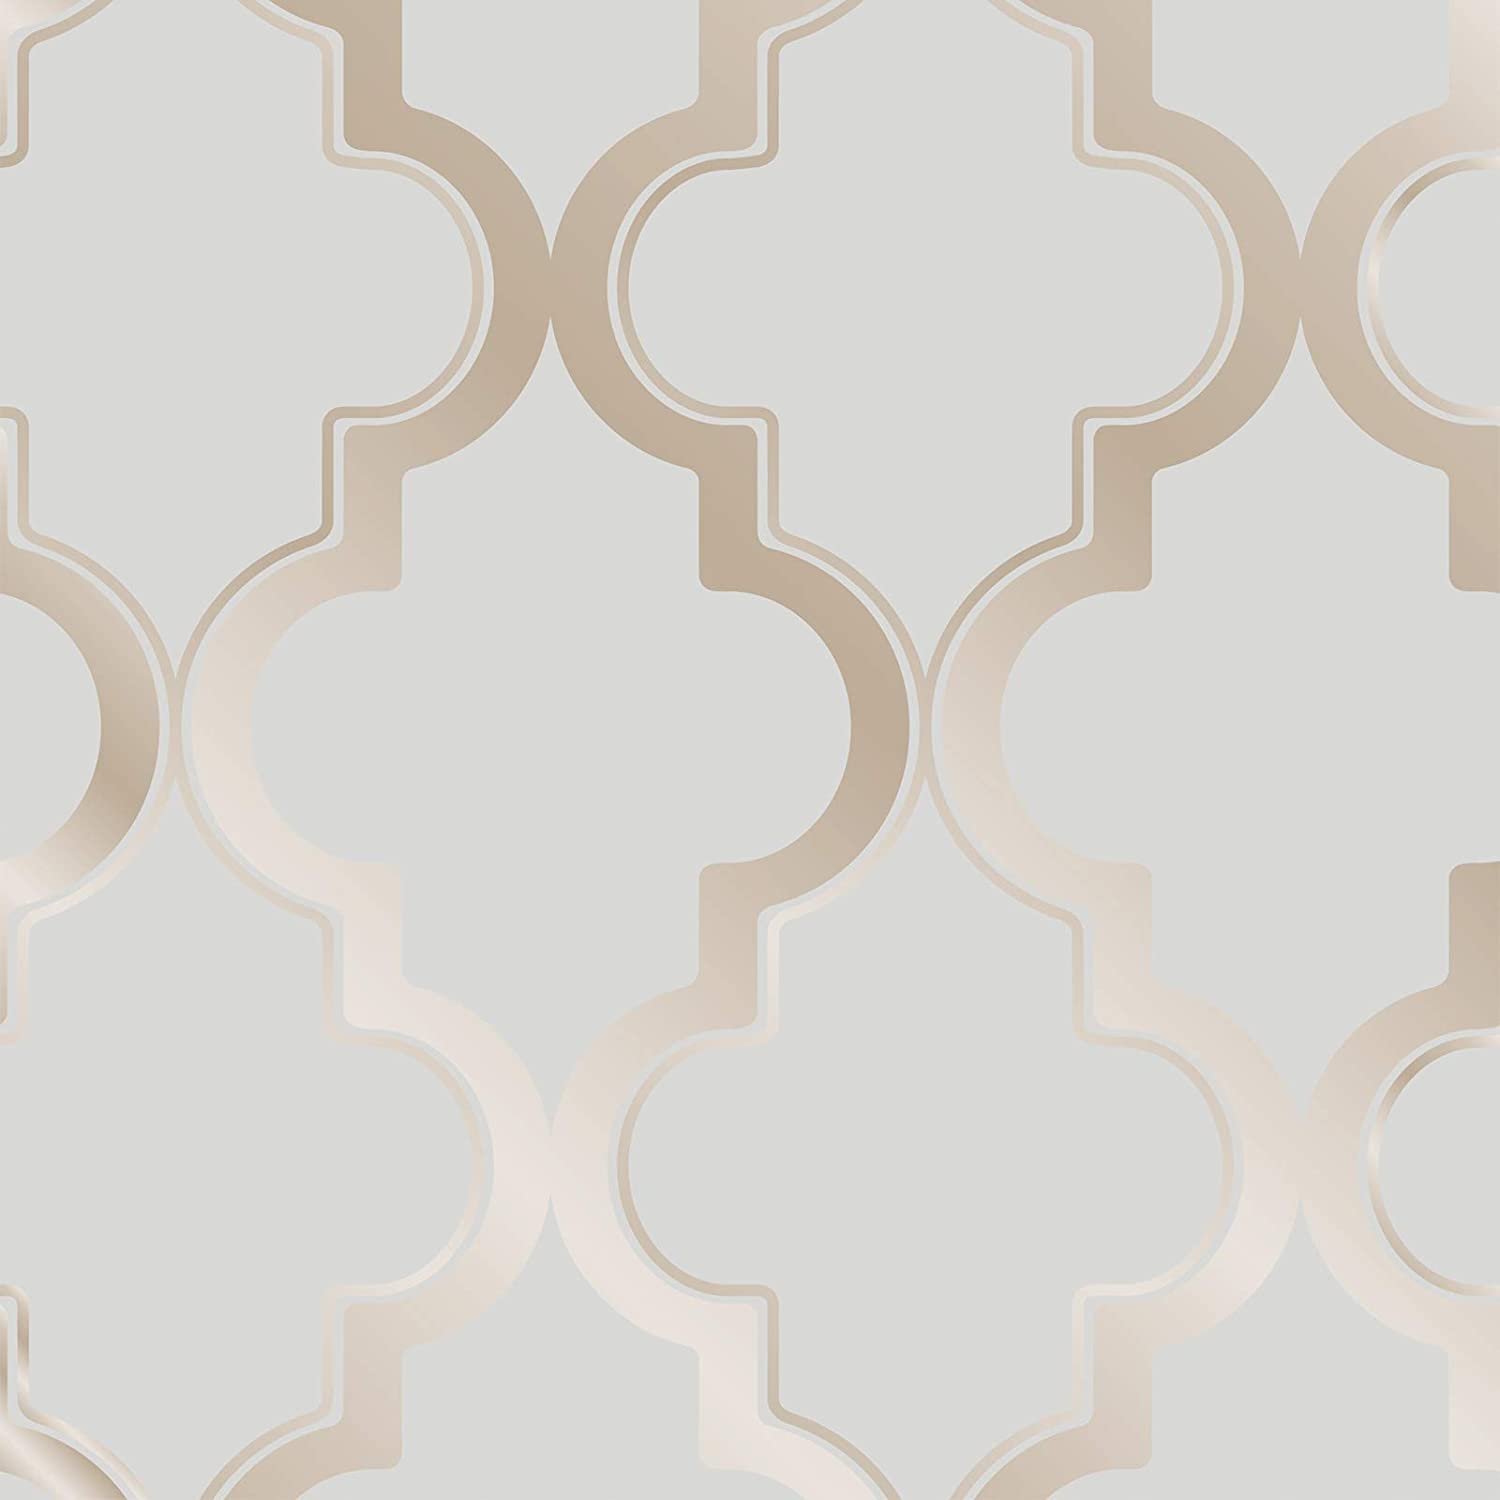 Cheap super special price Tempaper MA10083 Over item handling Marrakesh Removable Peel Stick 2 Wallpaper and